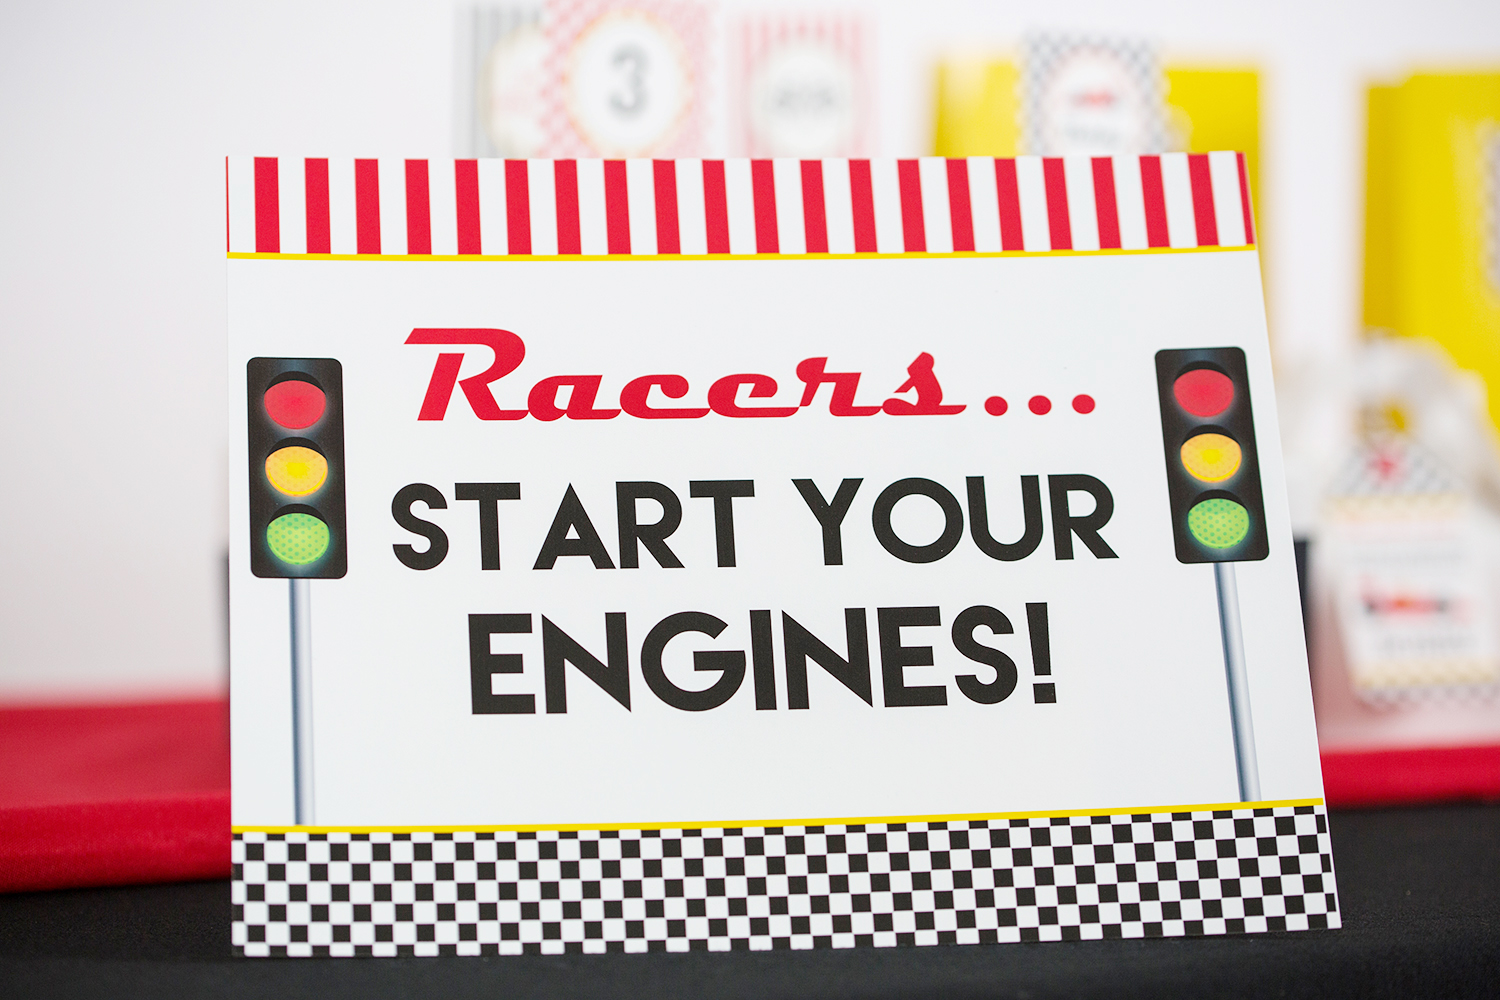 Mickey and the Roadster Racers: Start Your Engines DVD ... |Start Your Engines Racers